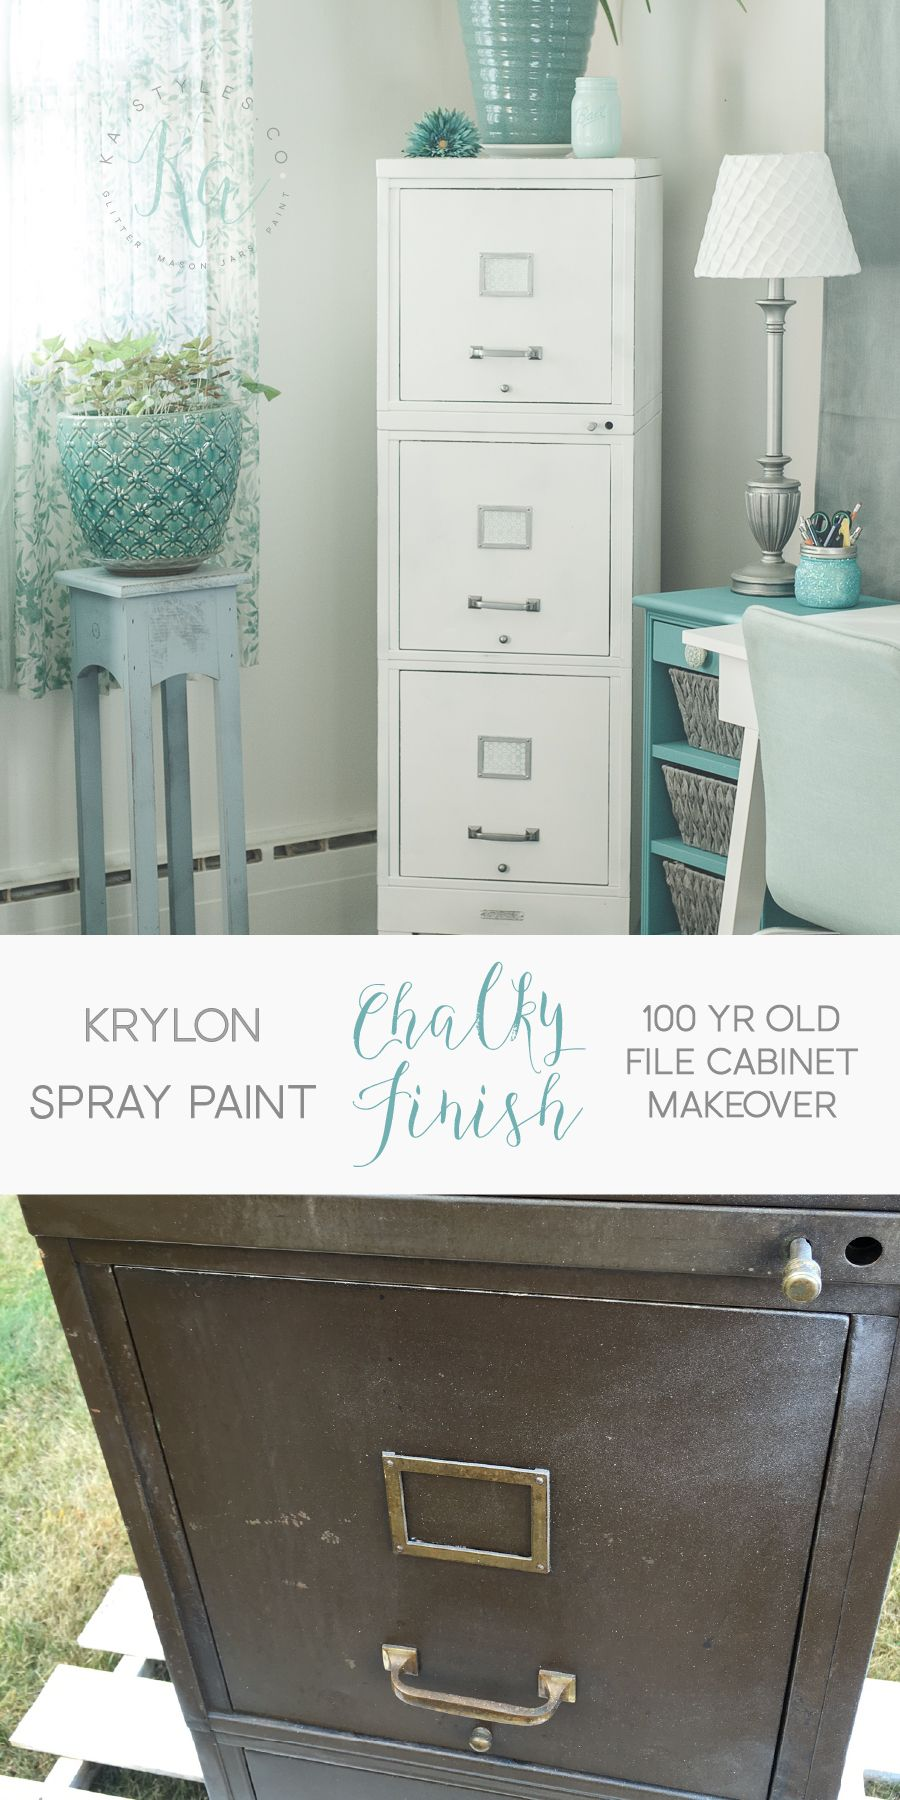 My 100 Year Old File Cabinet Makeover | Painted filing ...